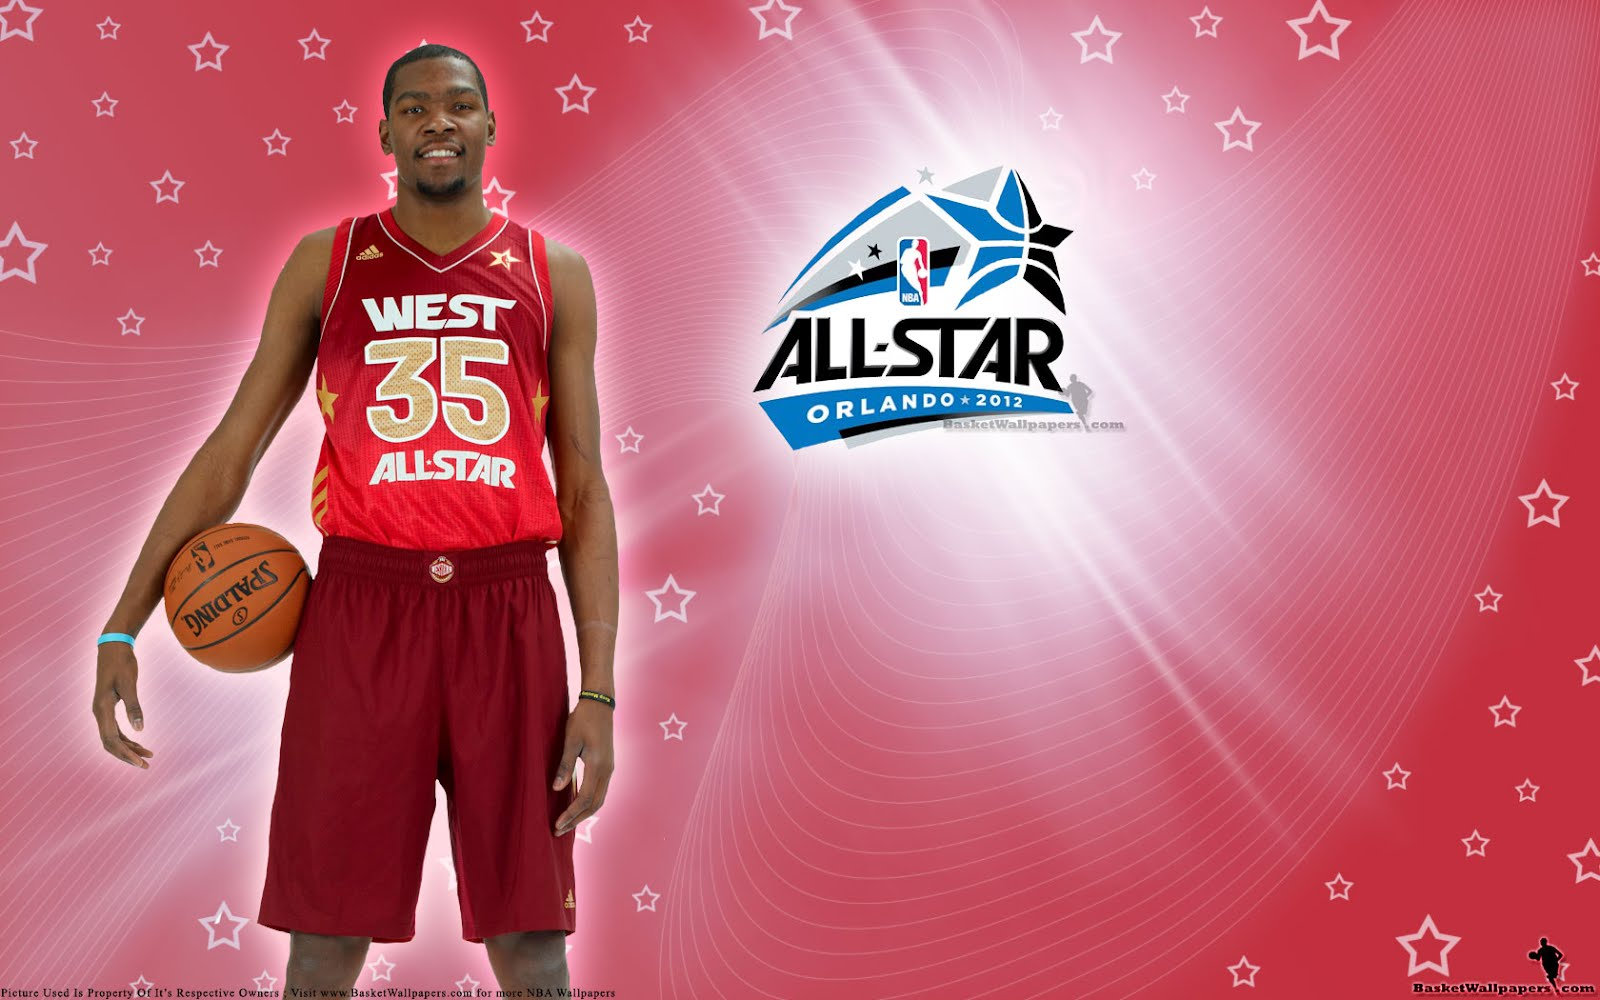 http://3.bp.blogspot.com/-uACD9HVzTDY/Tz_HPV3MQ8I/AAAAAAAAPlY/uxx8BAYsbC0/s1600/2012-NBA-All-Star-Kevin-Durant-Wallpaper-BasketWallpapers.com-.jpg